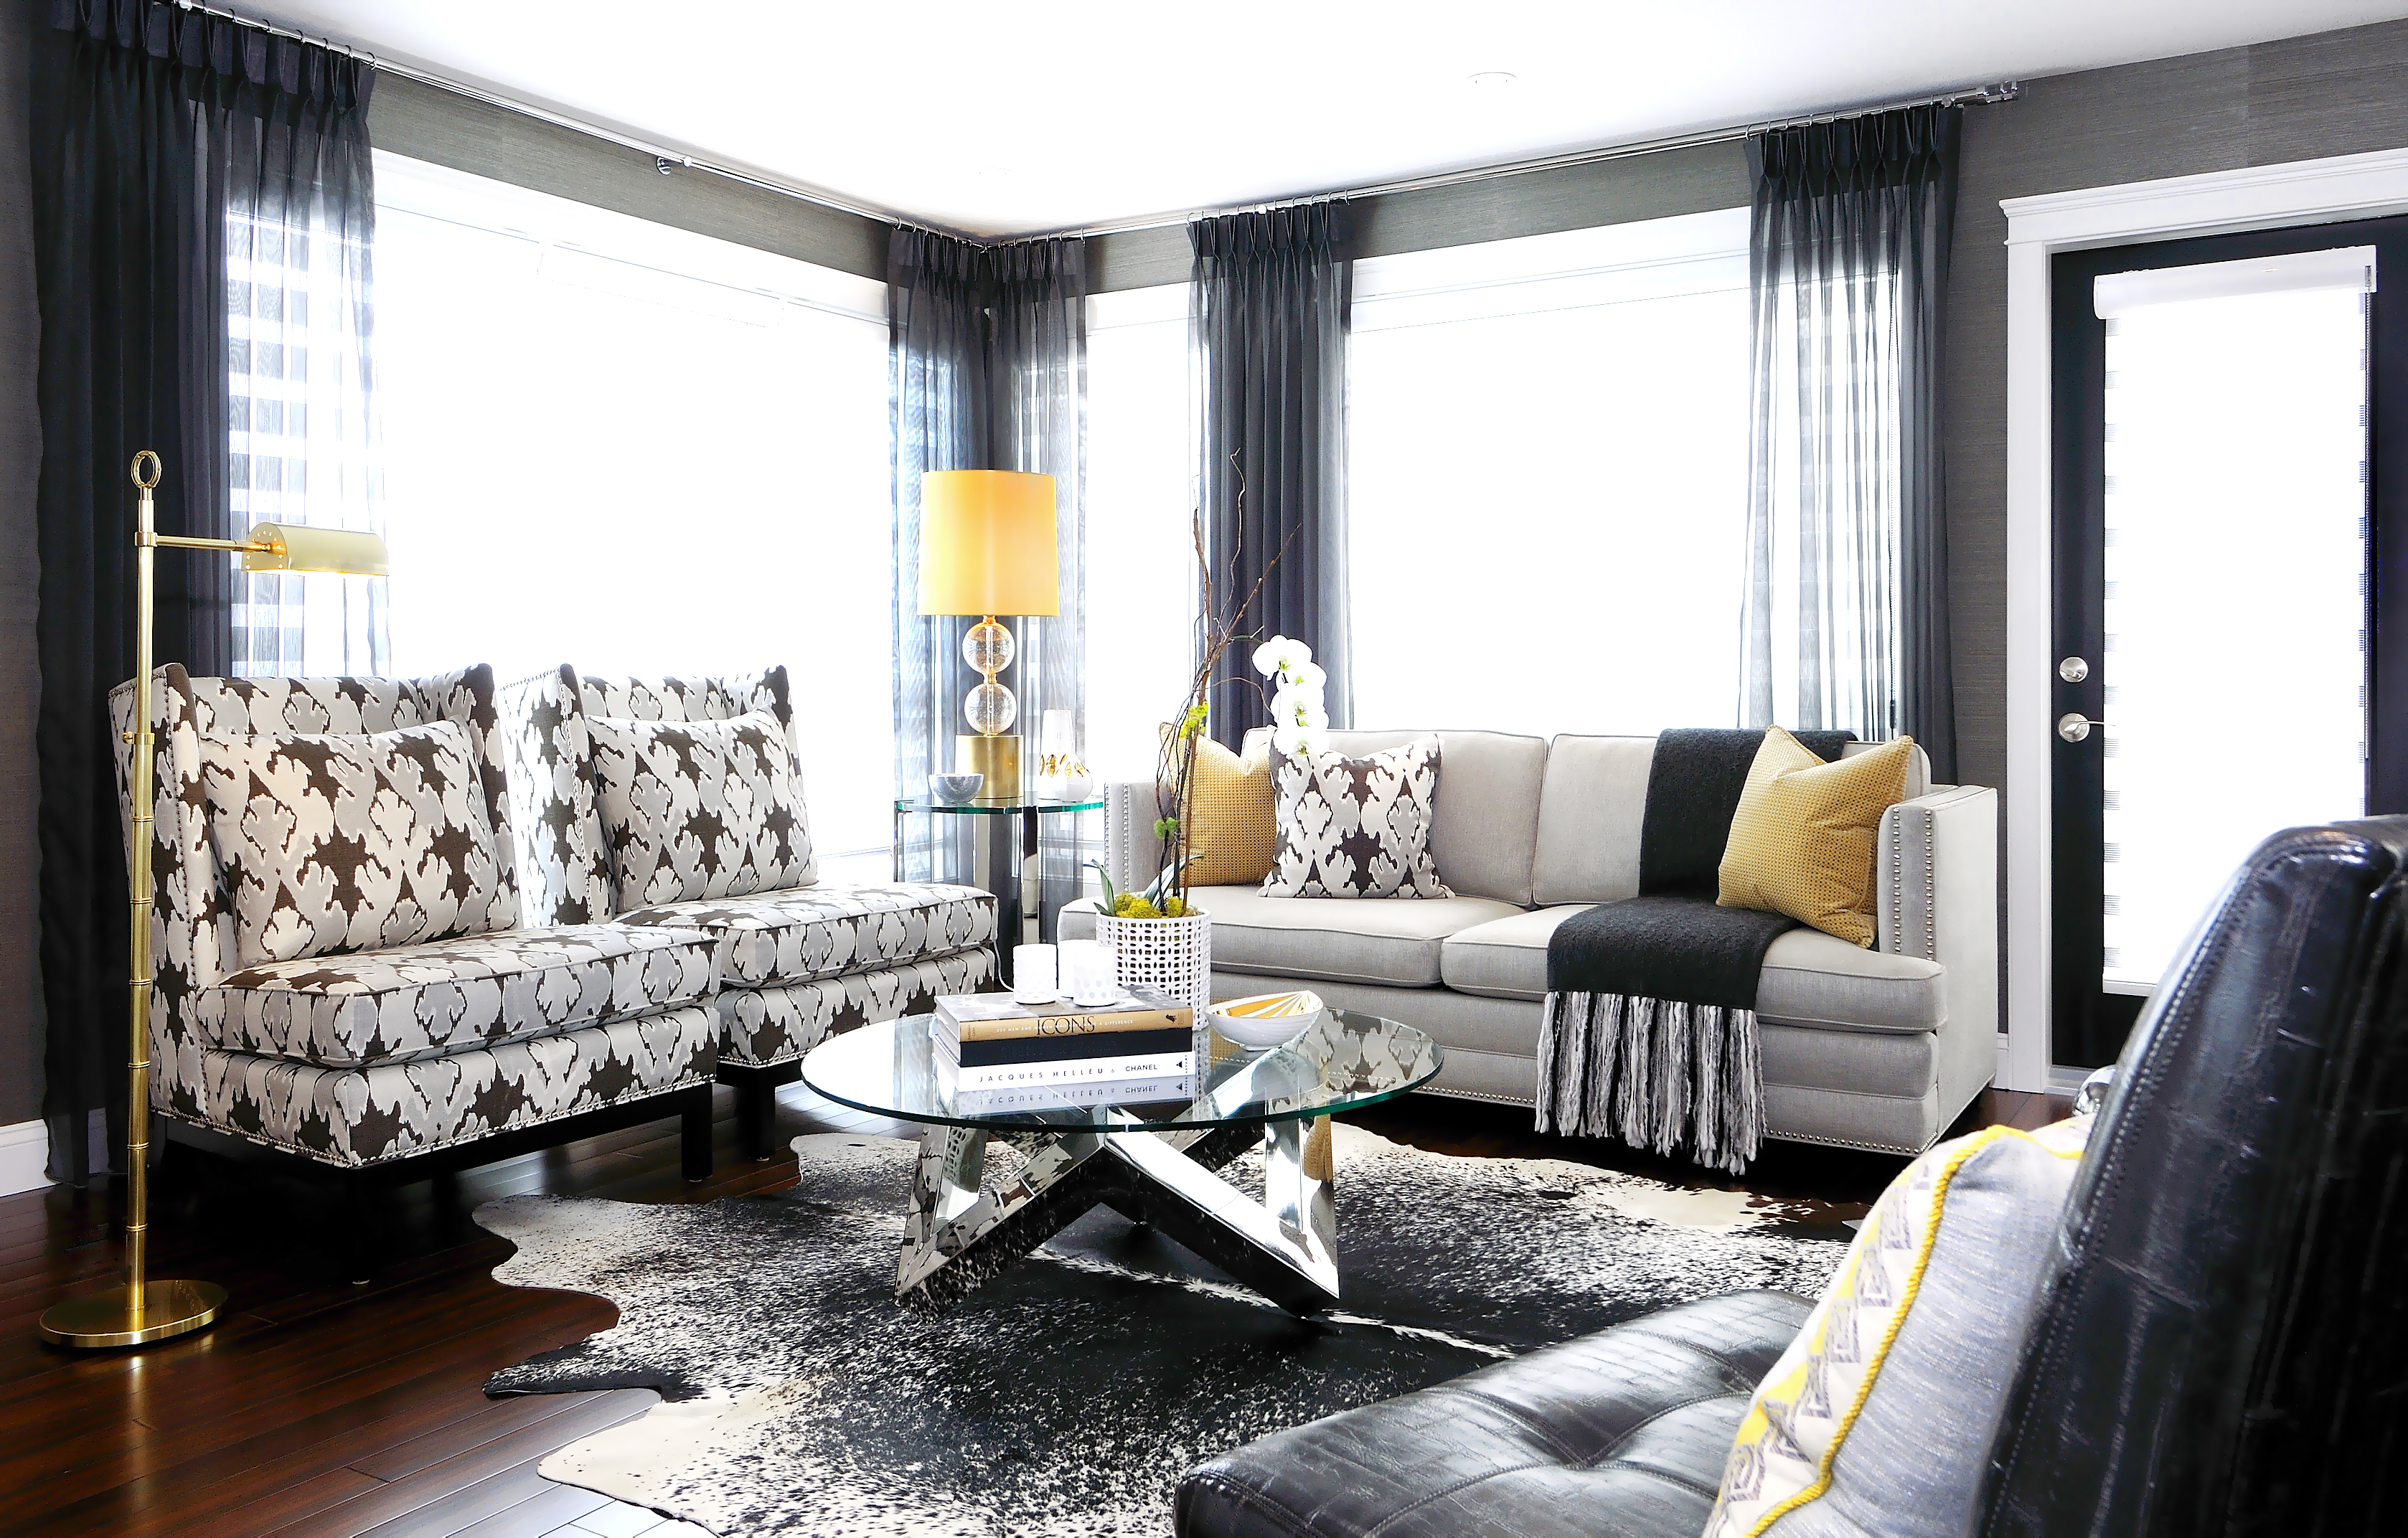 The atmosphere how to finish off a room atmosphere - How to decorate a gray living room ...